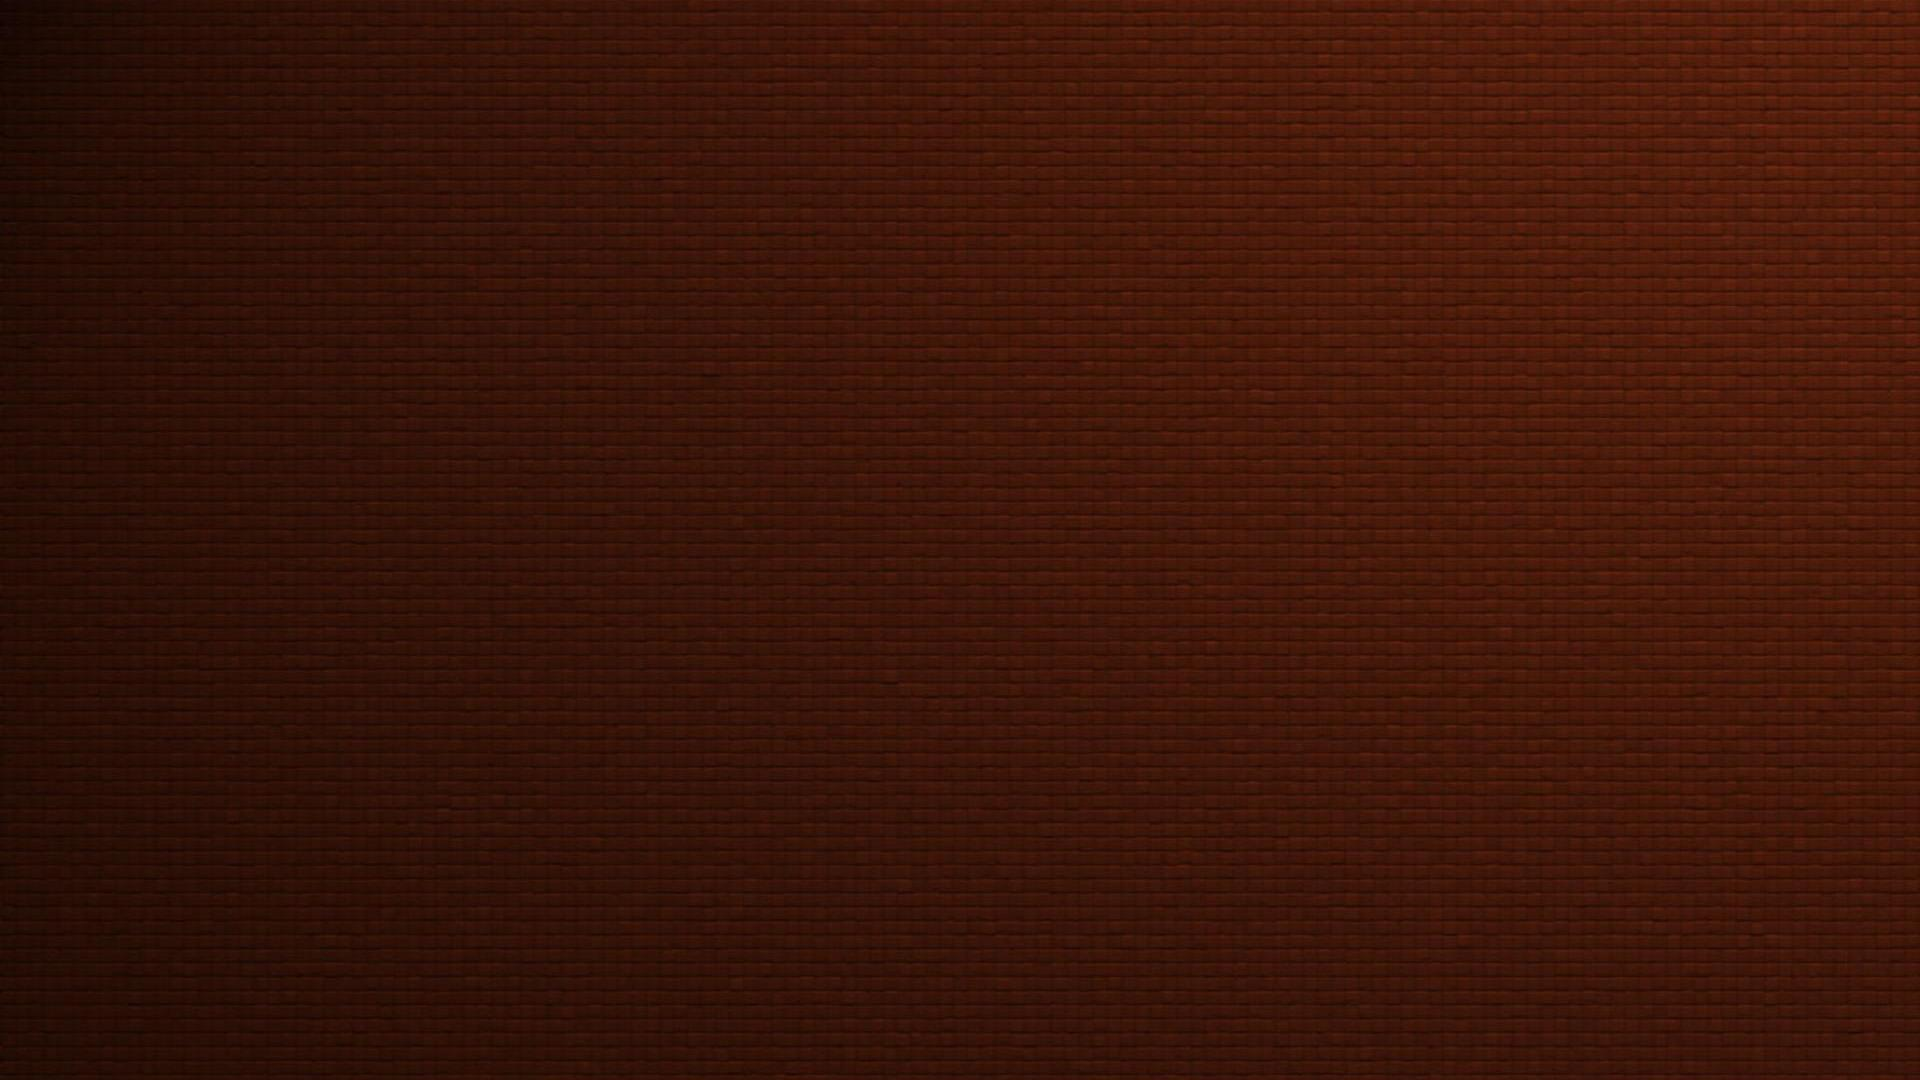 wallpaper squares abstract brown wallpapers 1920x1080 1920x1080